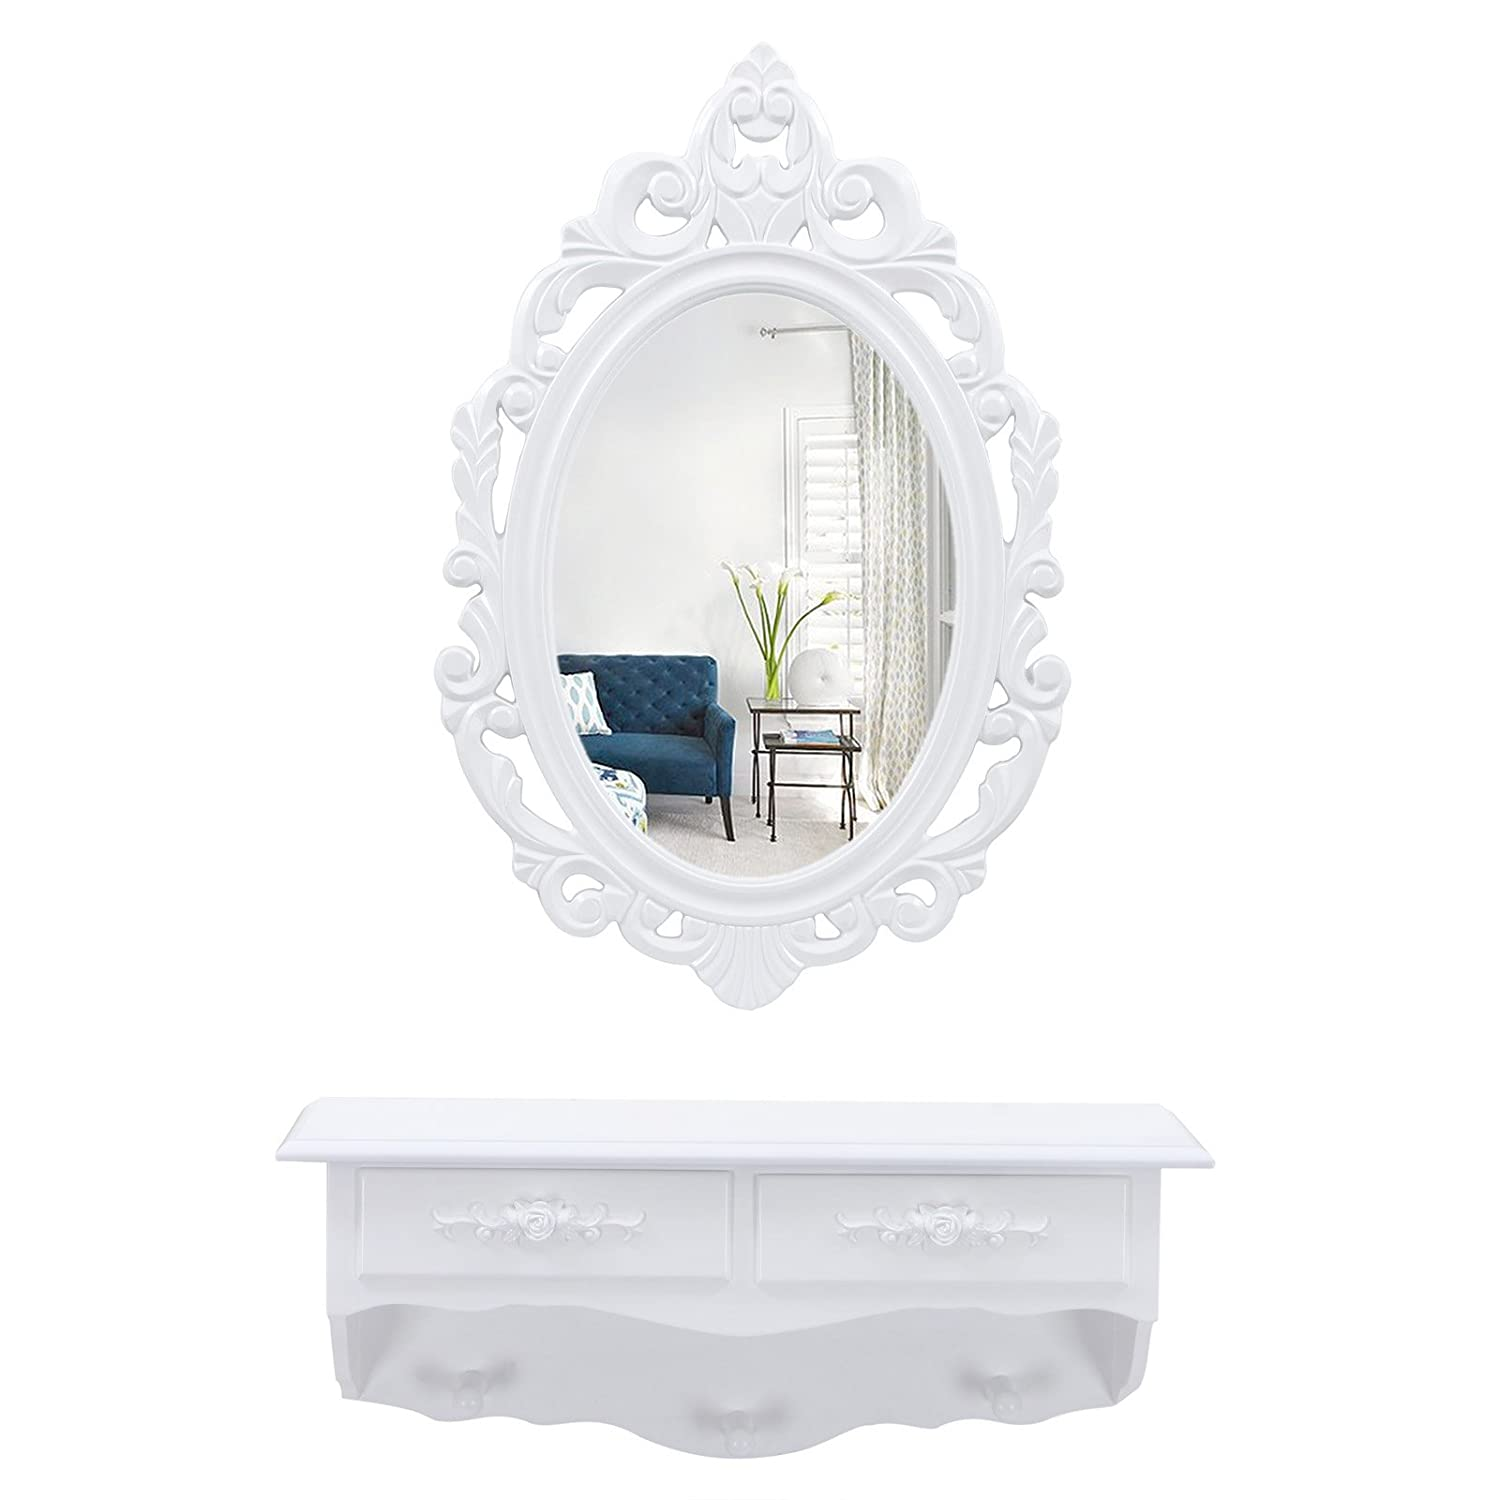 good songmics coiffeuse murale blanche avec miroir tiroirs. Black Bedroom Furniture Sets. Home Design Ideas